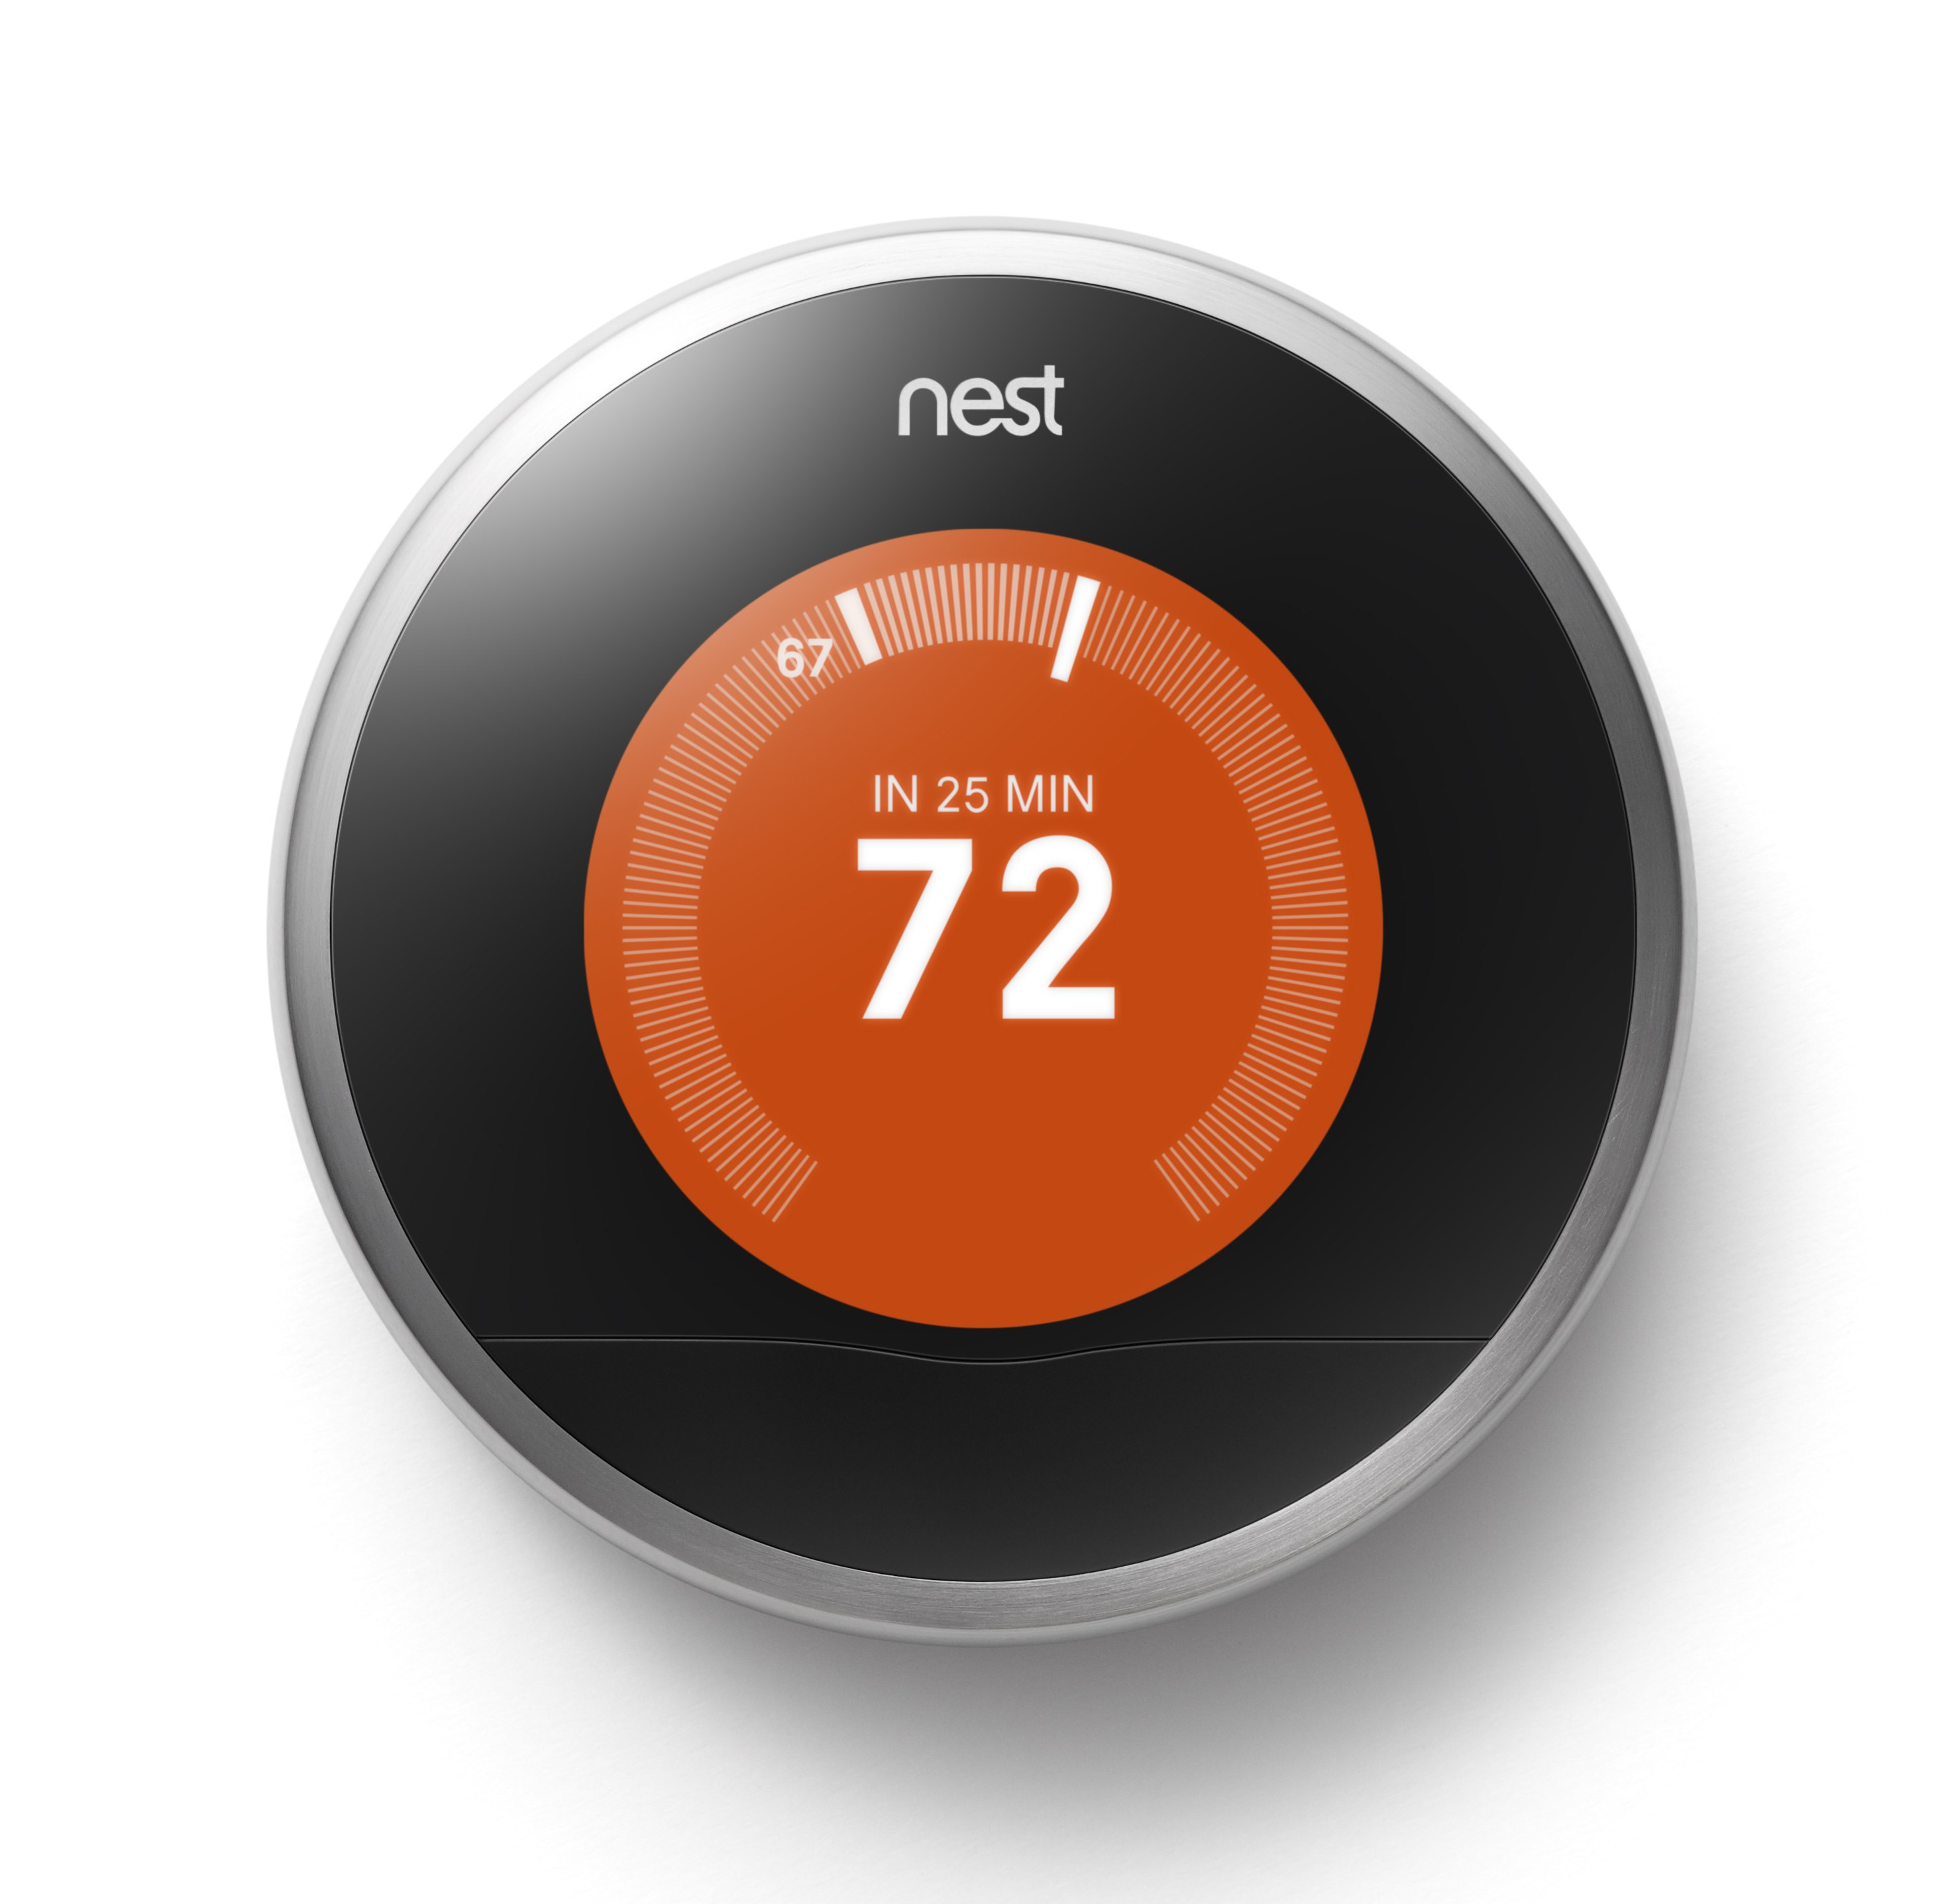 Are You Ready For A NEST? A Smart Thermostat For The Rest Of Us.